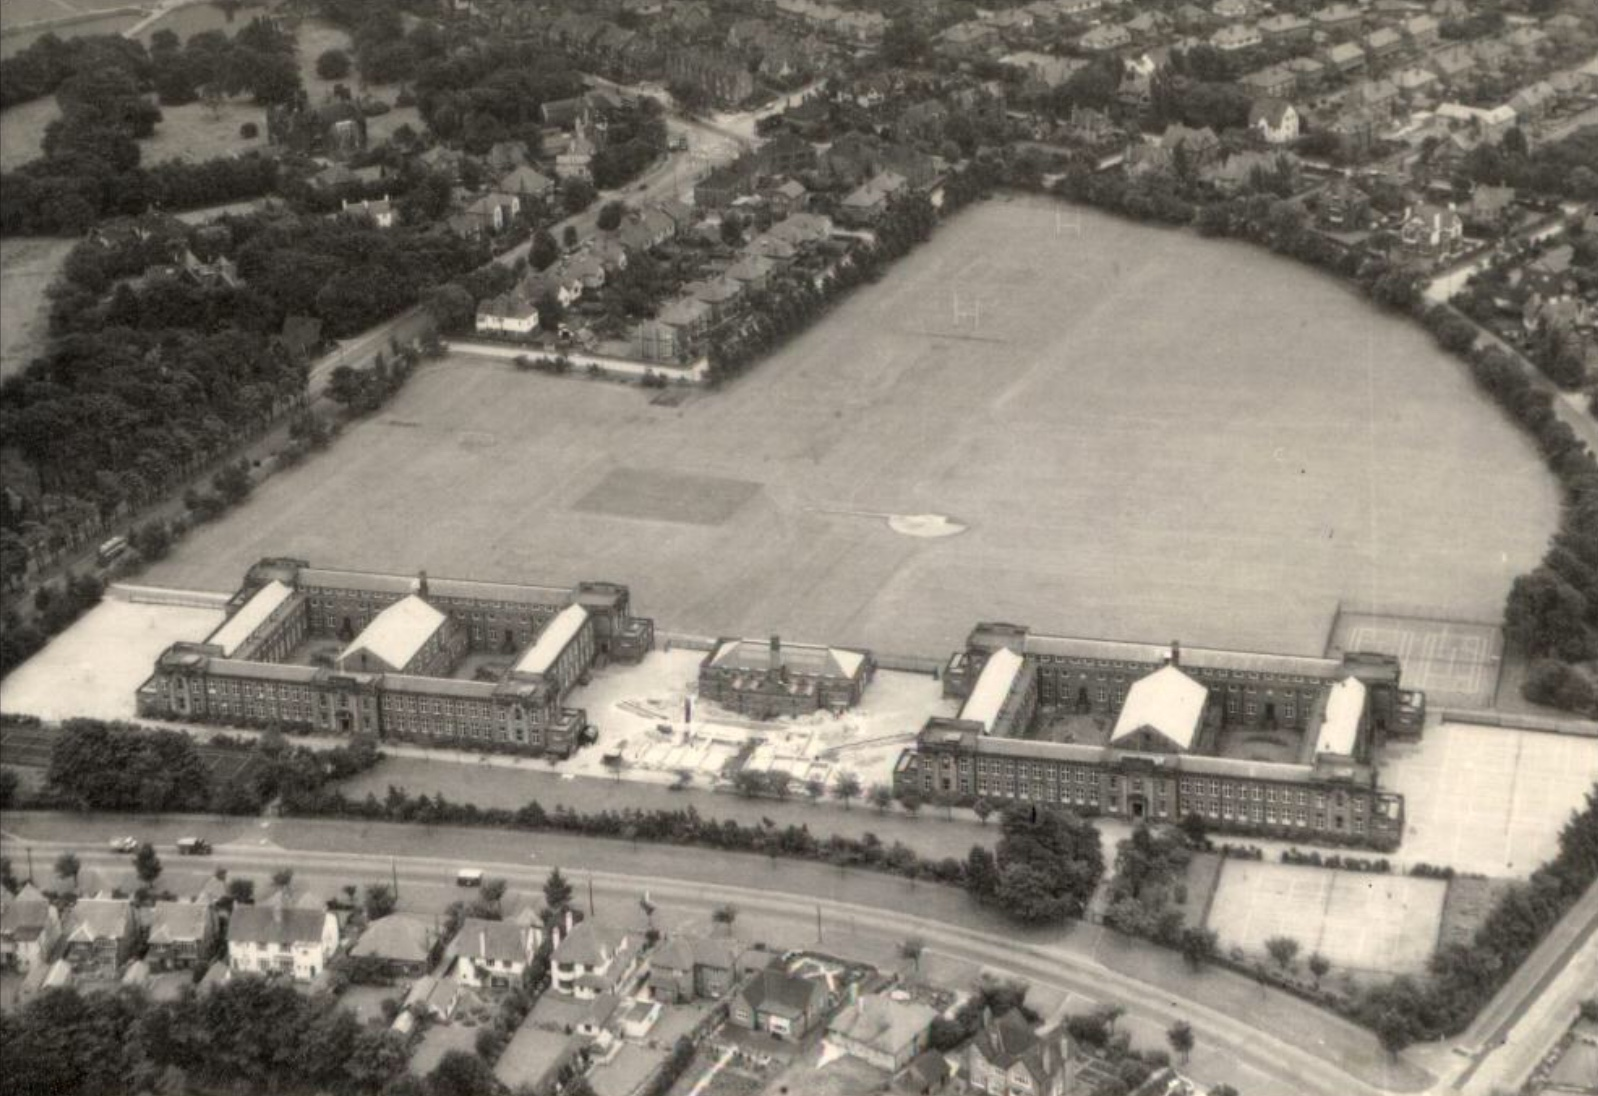 Lawnswood and Leeds Modern Schools